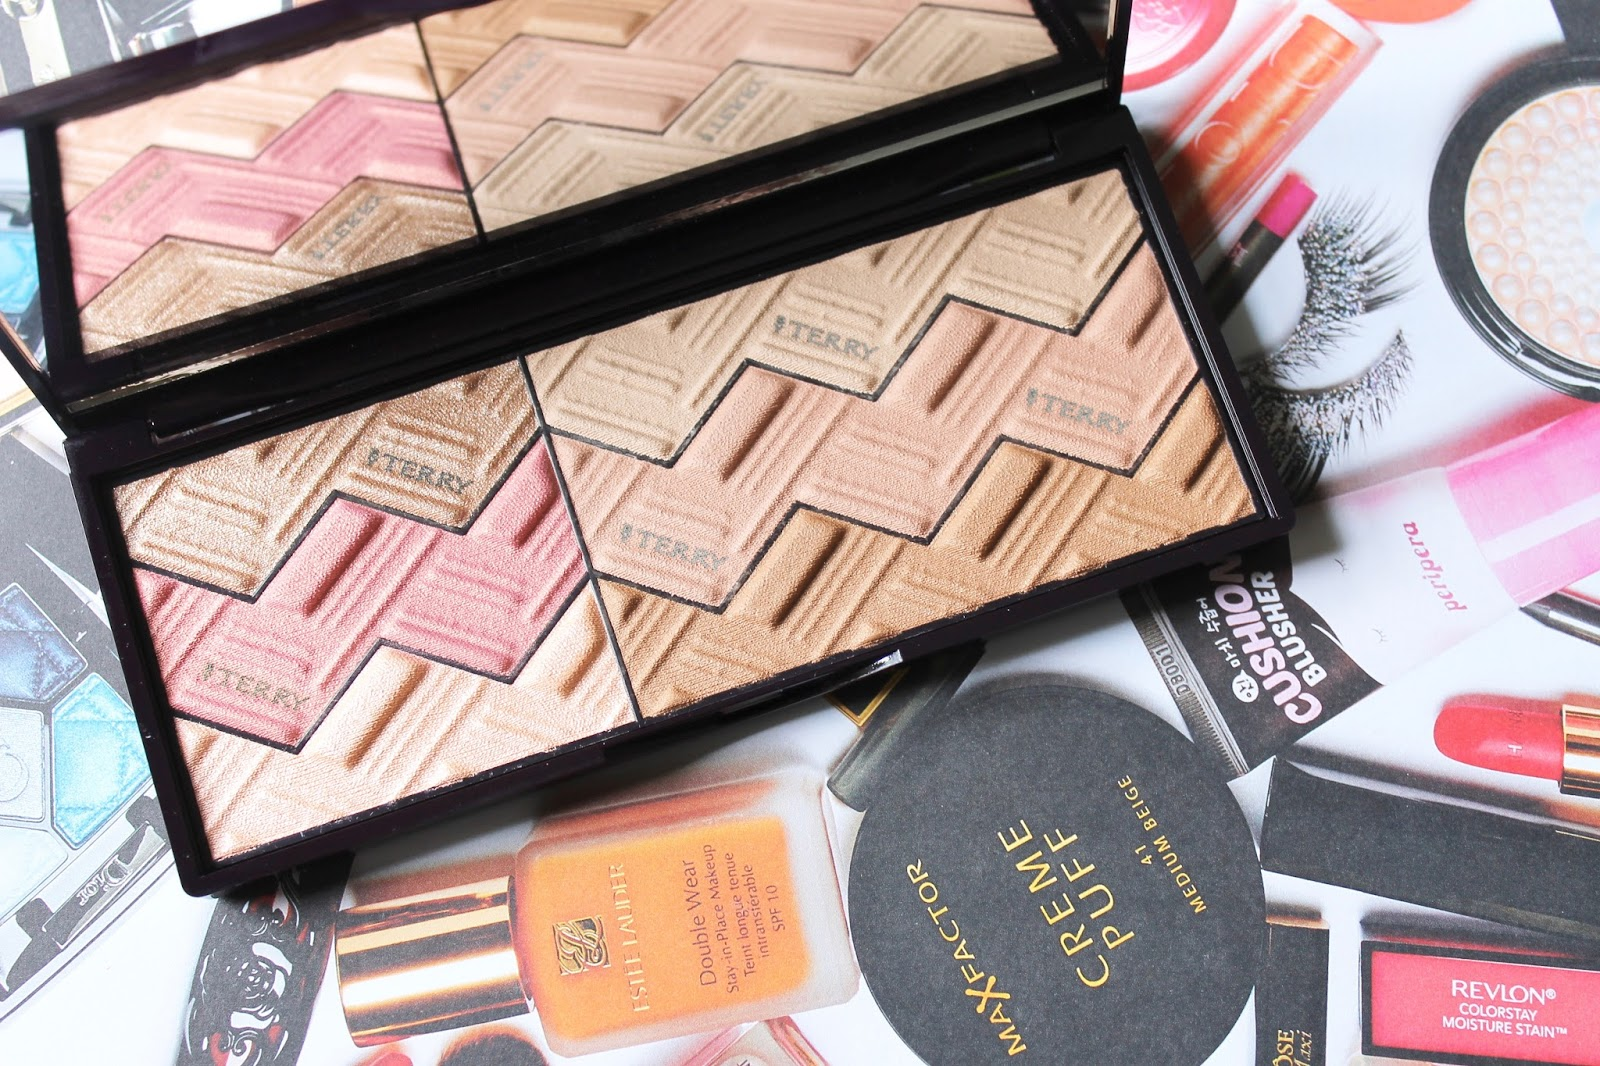 THE PERFECT PALETTE FOR A SUMMER GLOW